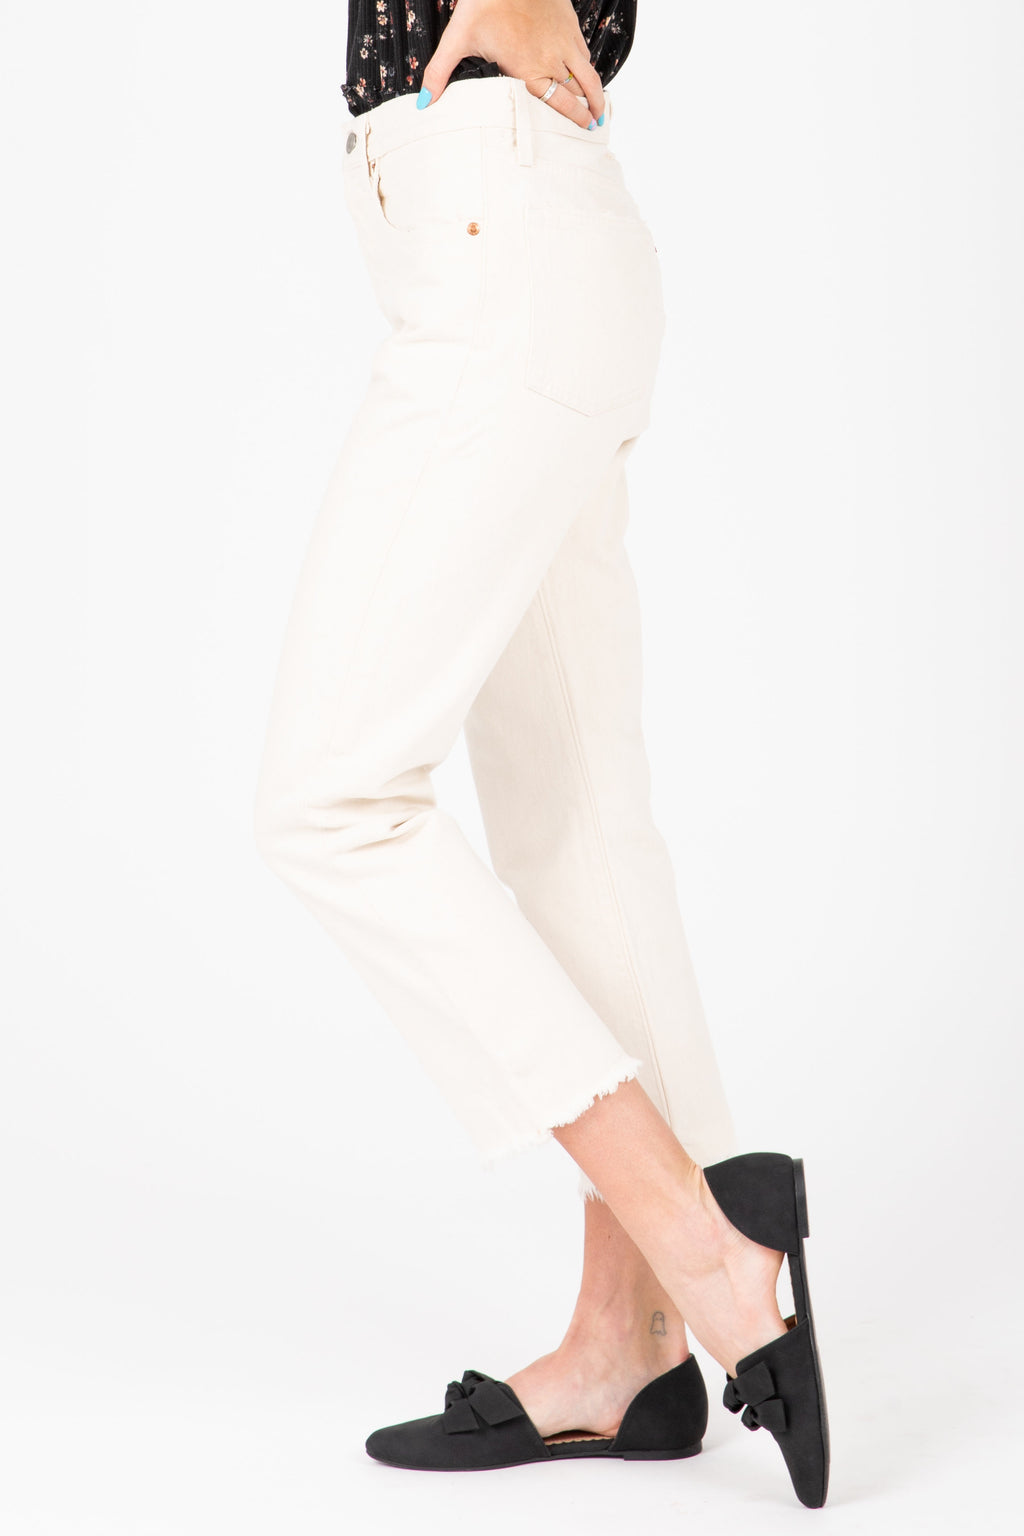 Levi's: 501 Original Cropped Jeans in Neutral Ground White, studio shoot; side view